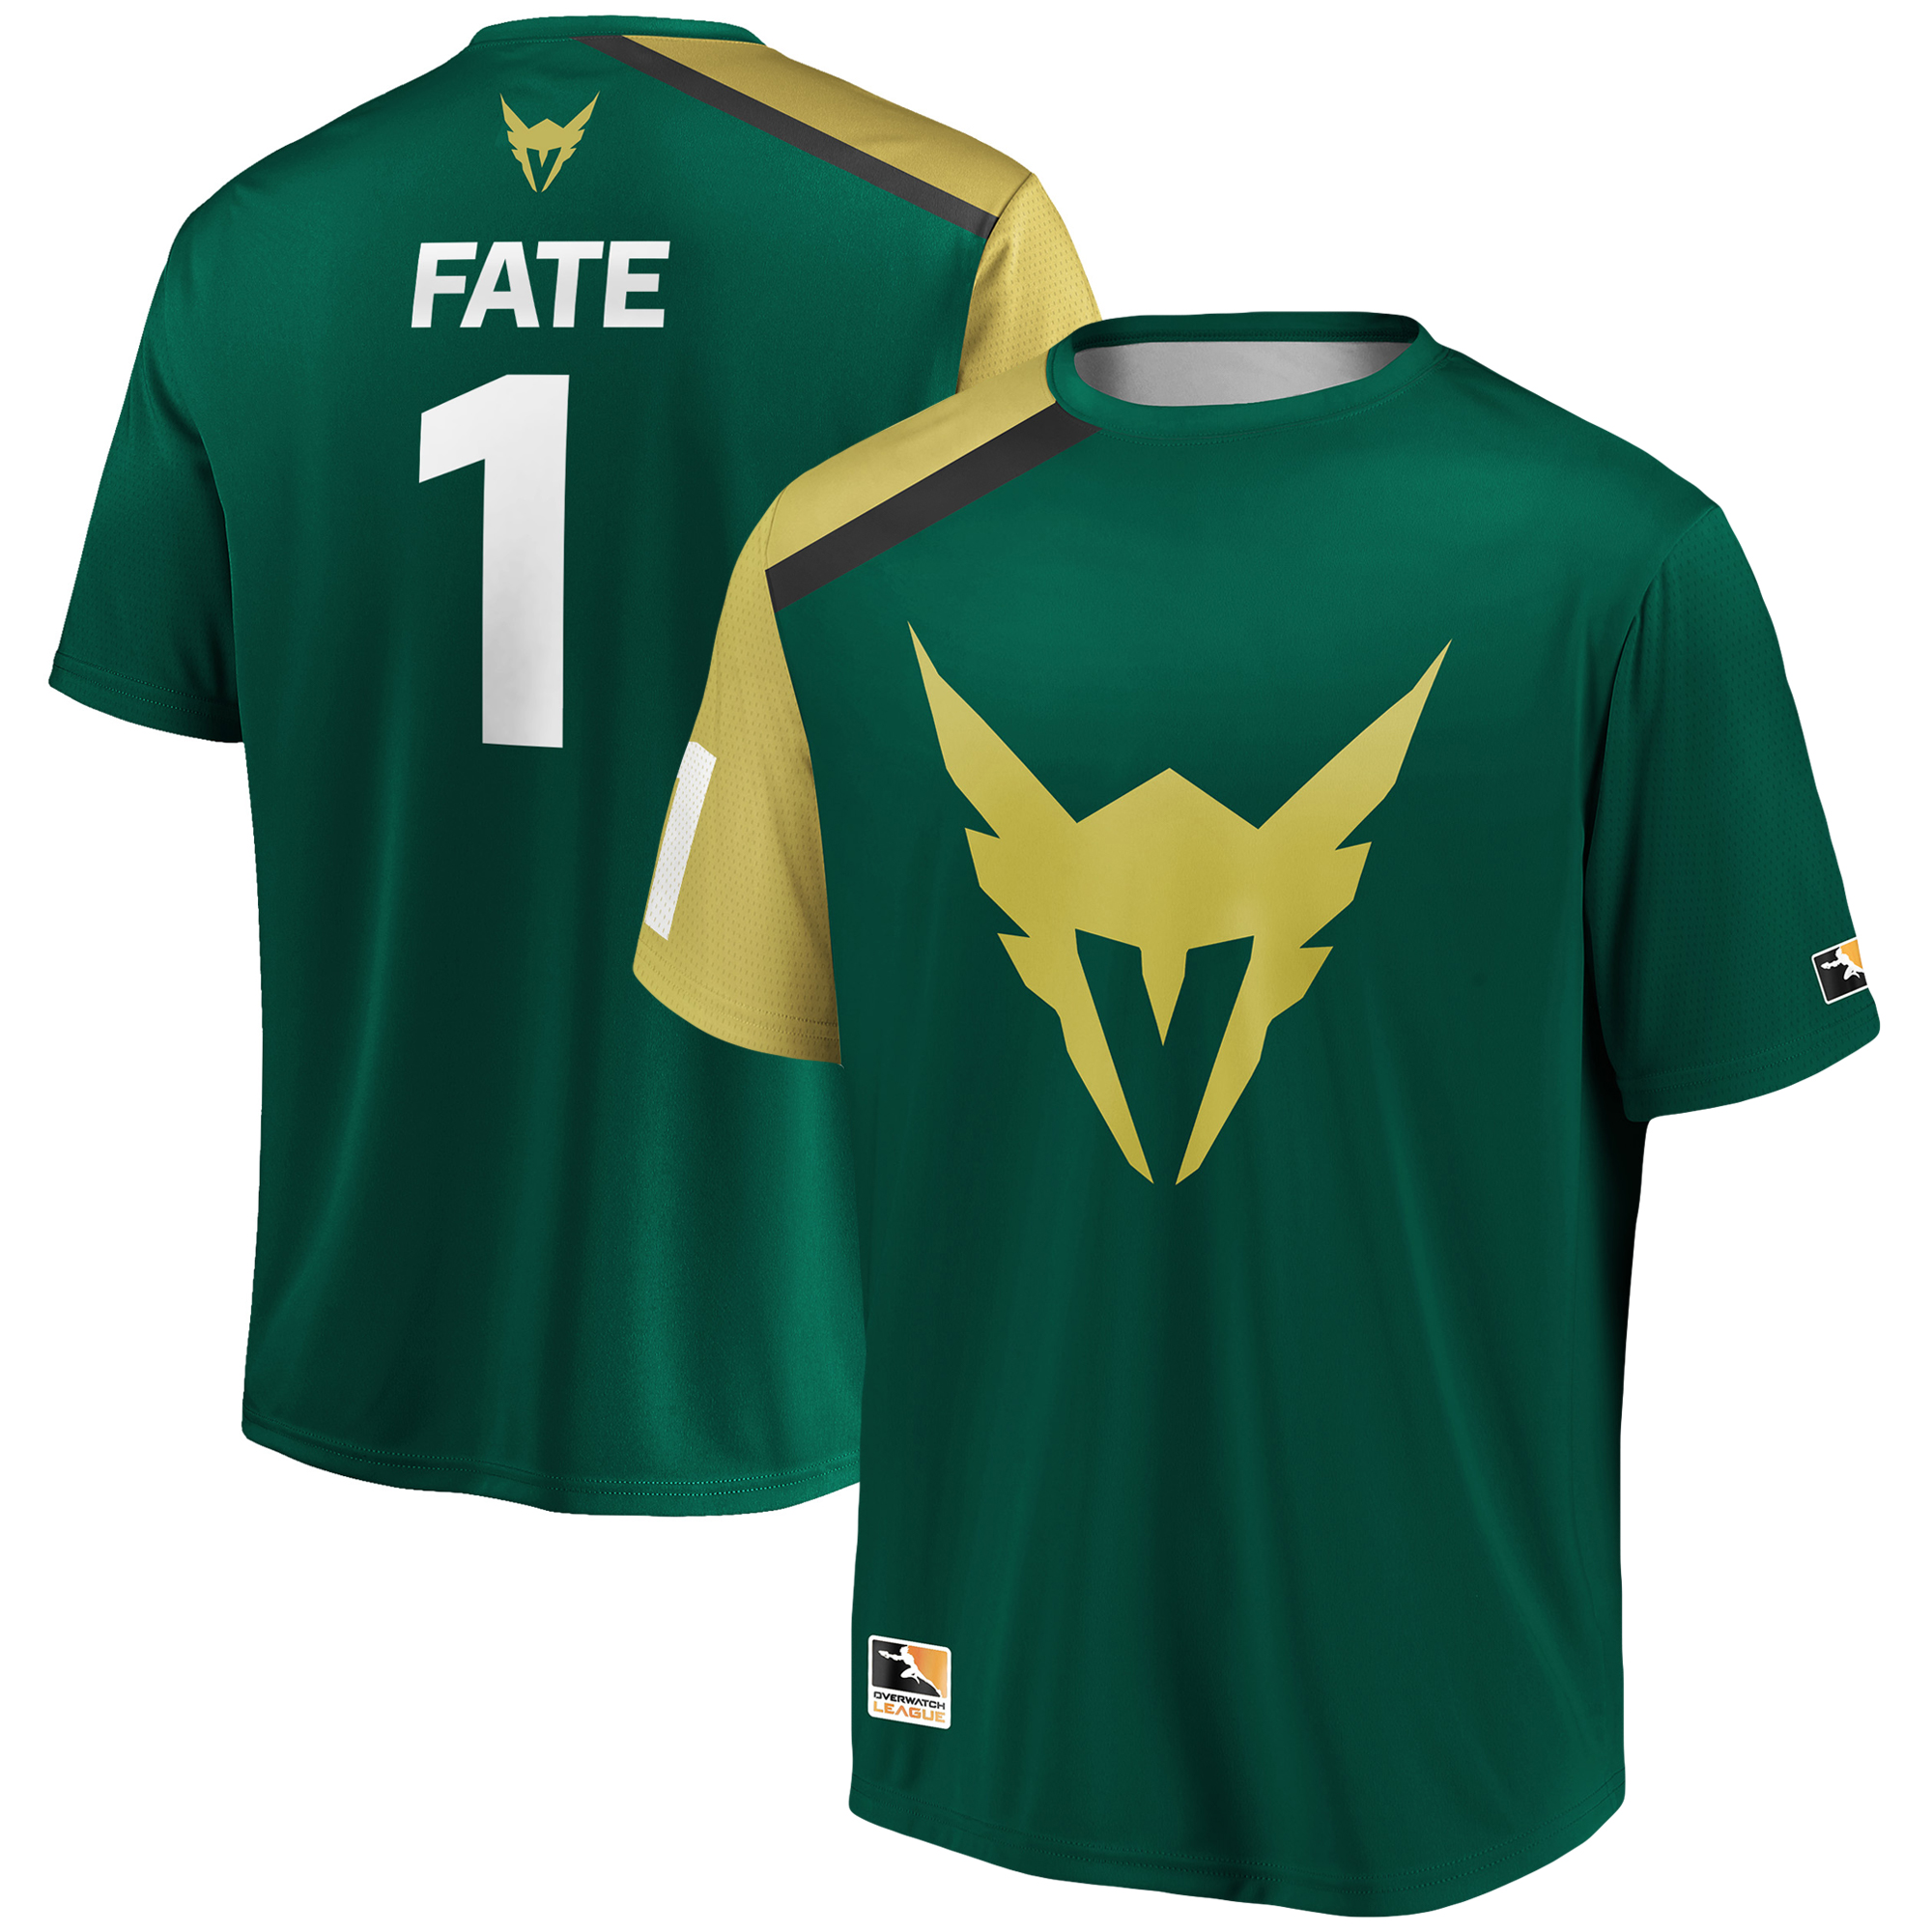 Fate Los Angeles Valiant Overwatch League Replica Home Jersey - Green